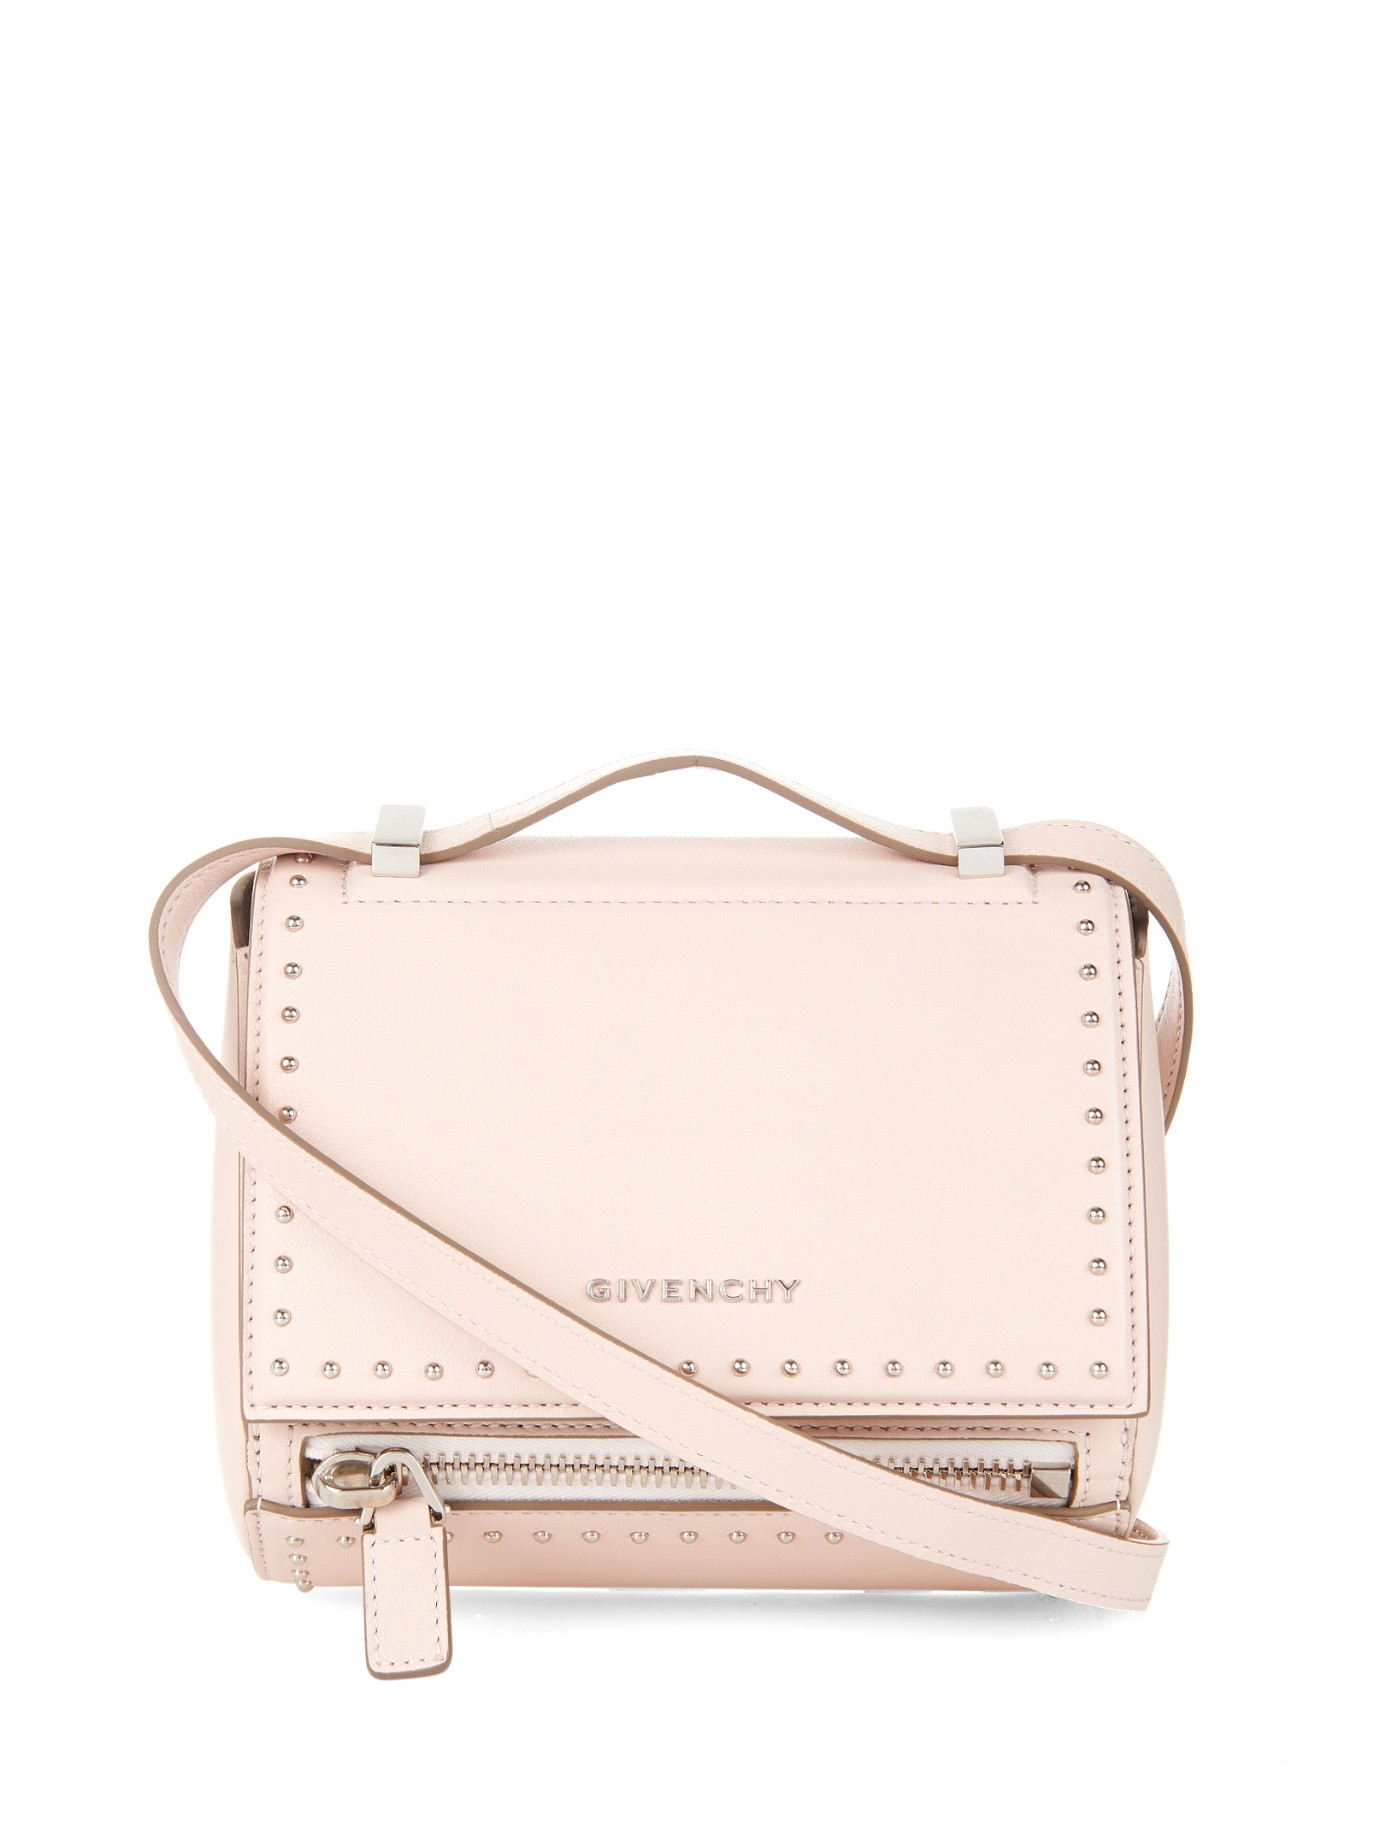 Lyst - Givenchy Pandora Box Mini Leather Bag in Natural 775f8f9e930aa